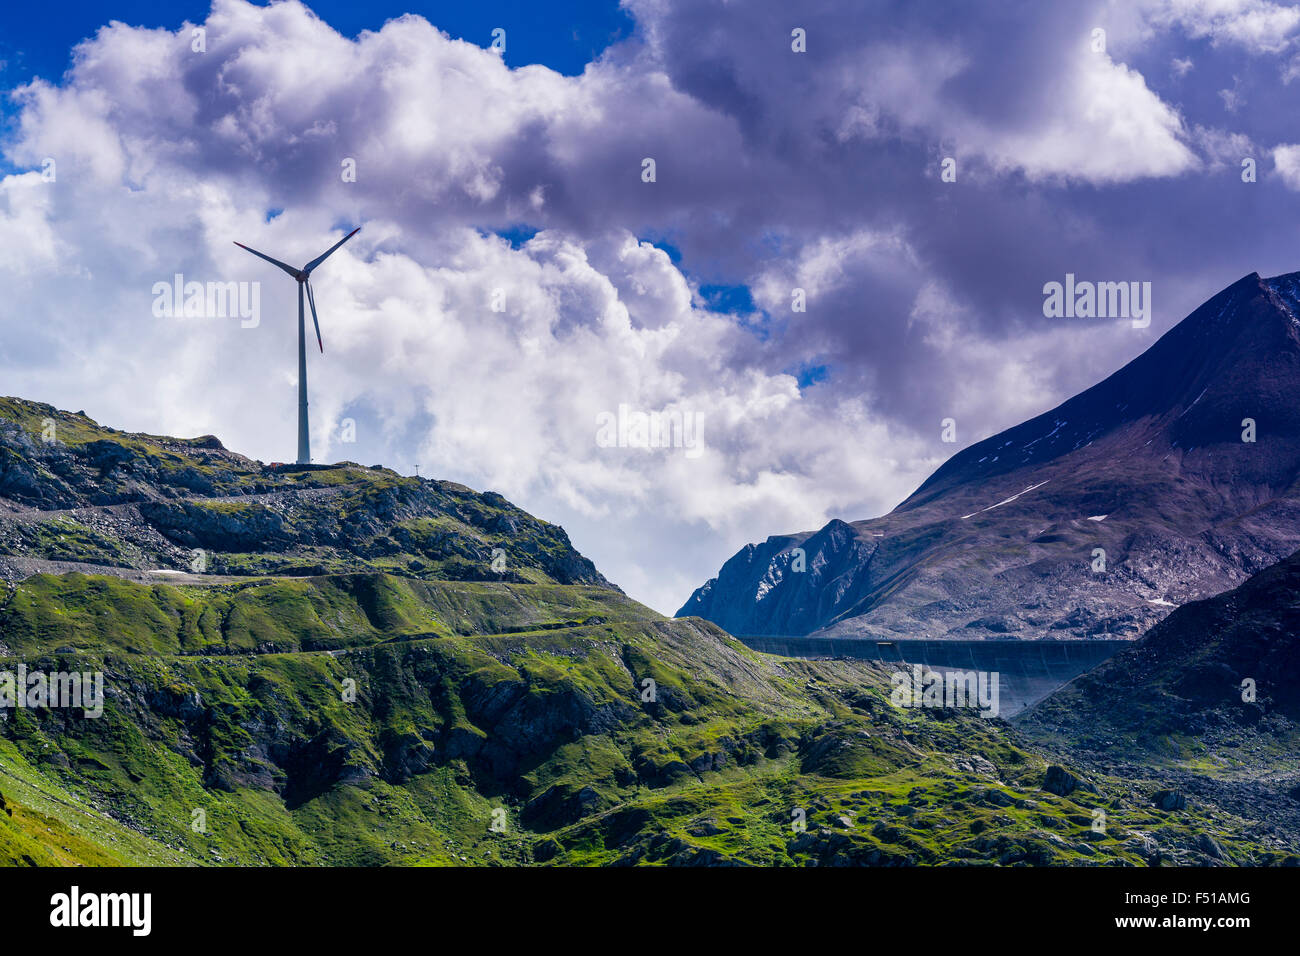 A wind powerplant is erected on mountains at high altitude near Nufenenpass, dark clouds at the sky - Stock Image